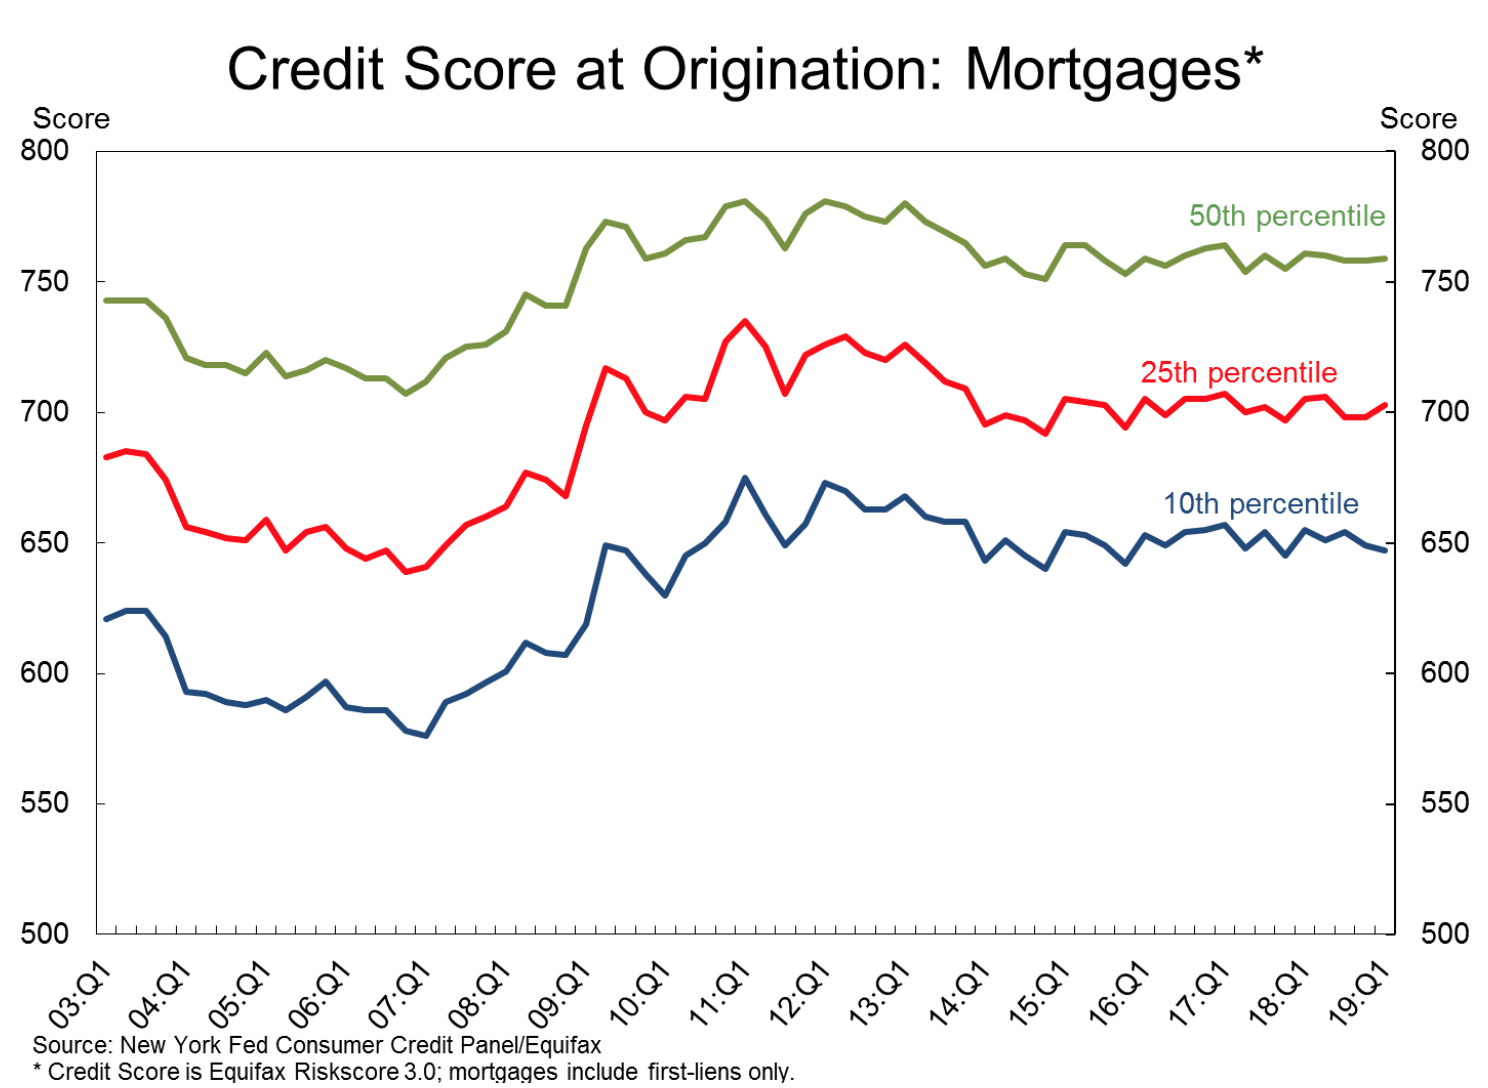 The average credit score to qualify for a mortgage